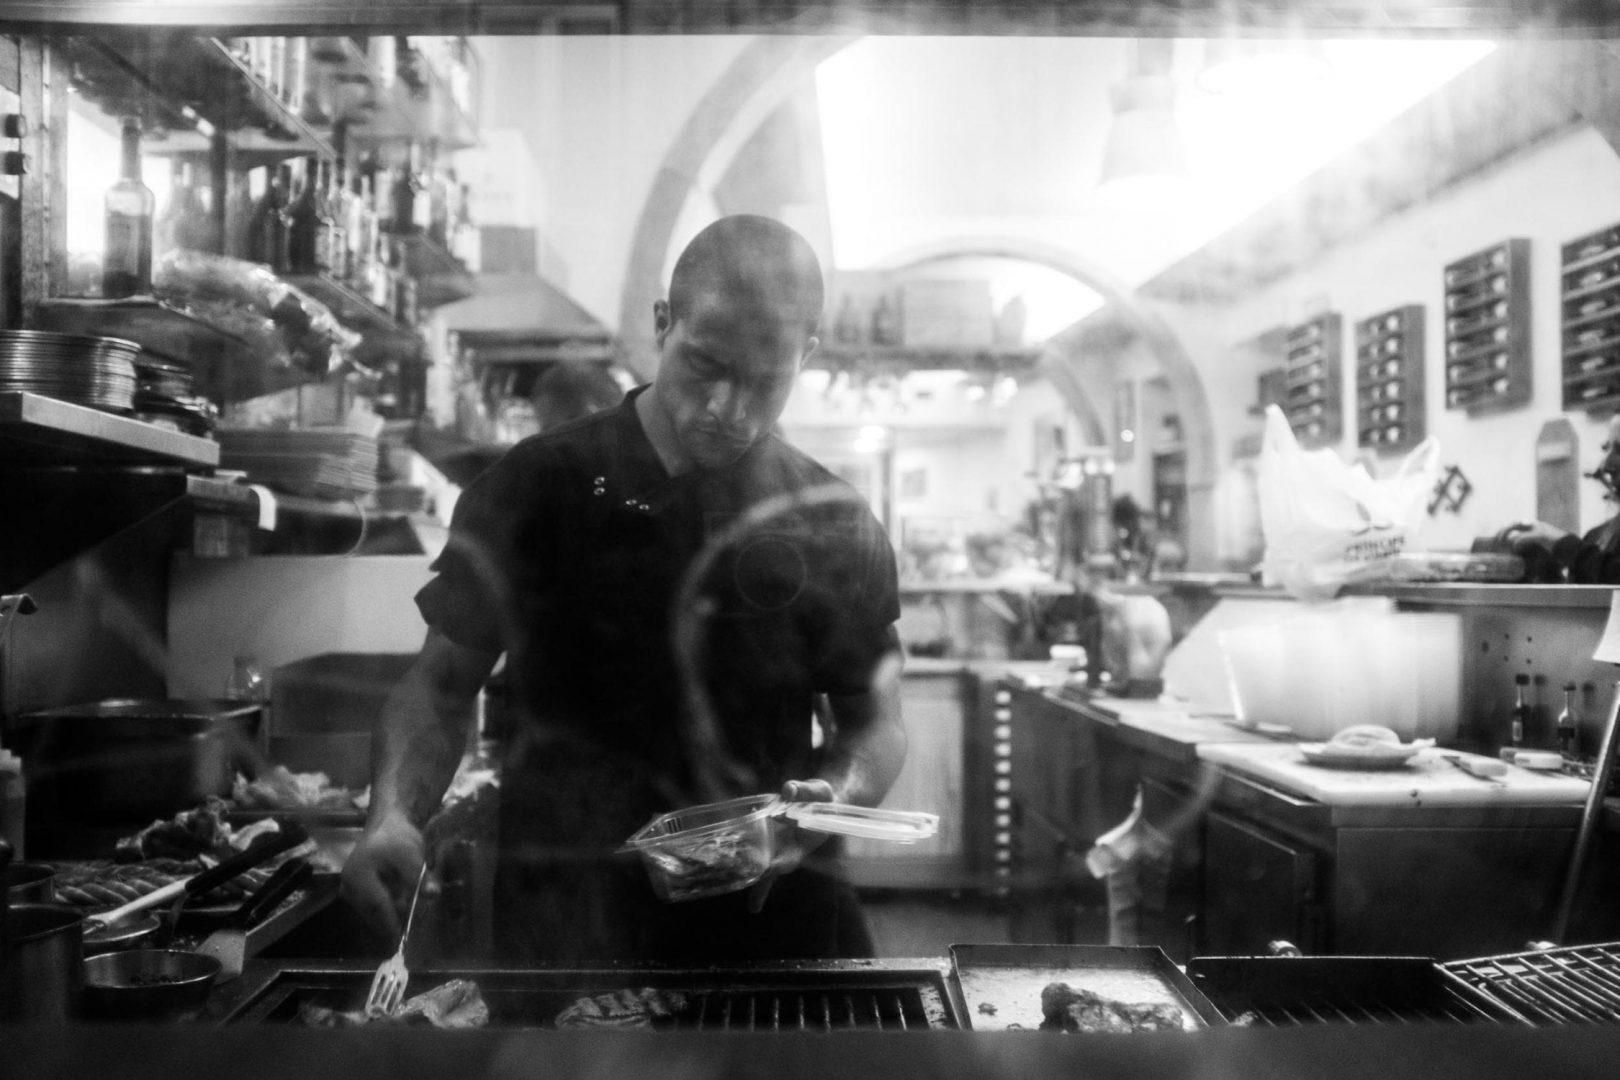 Window shot of a restaurant. The Fujifilm X100F is so discreet that this guy didn't even spot that I was taking him a picture.